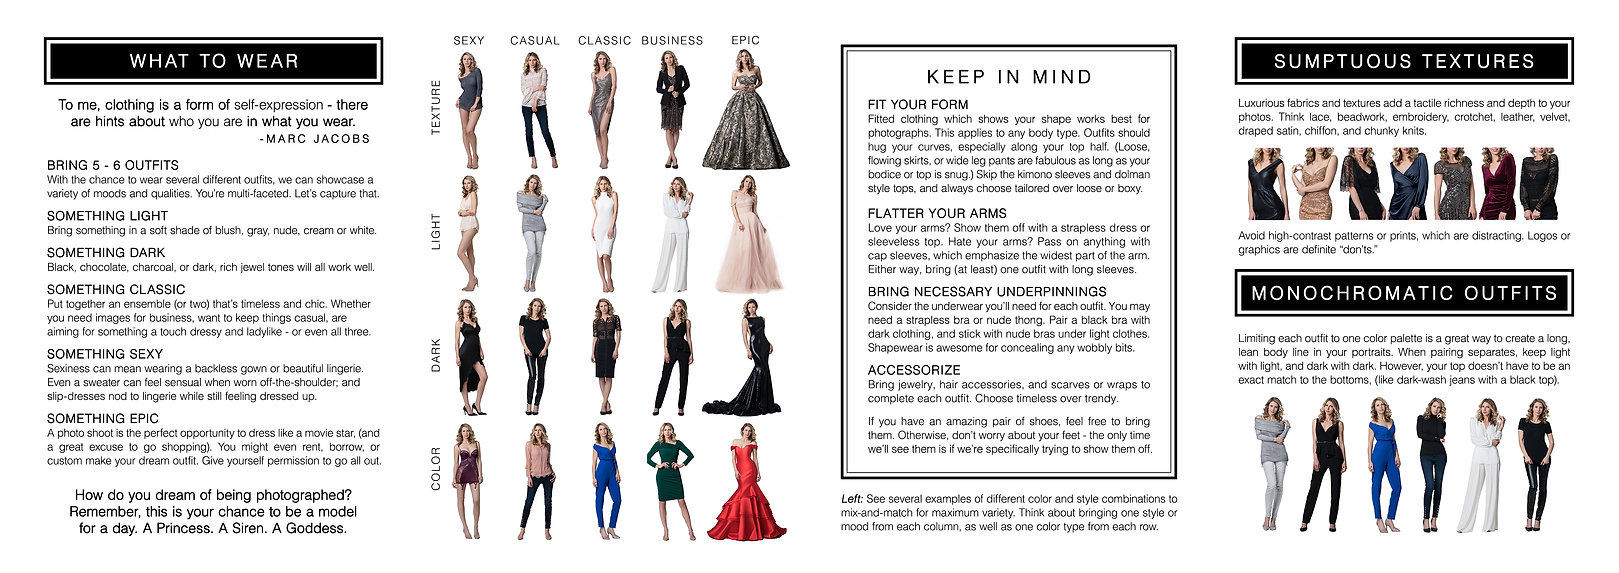 Style Guide Inside Spread.jpg